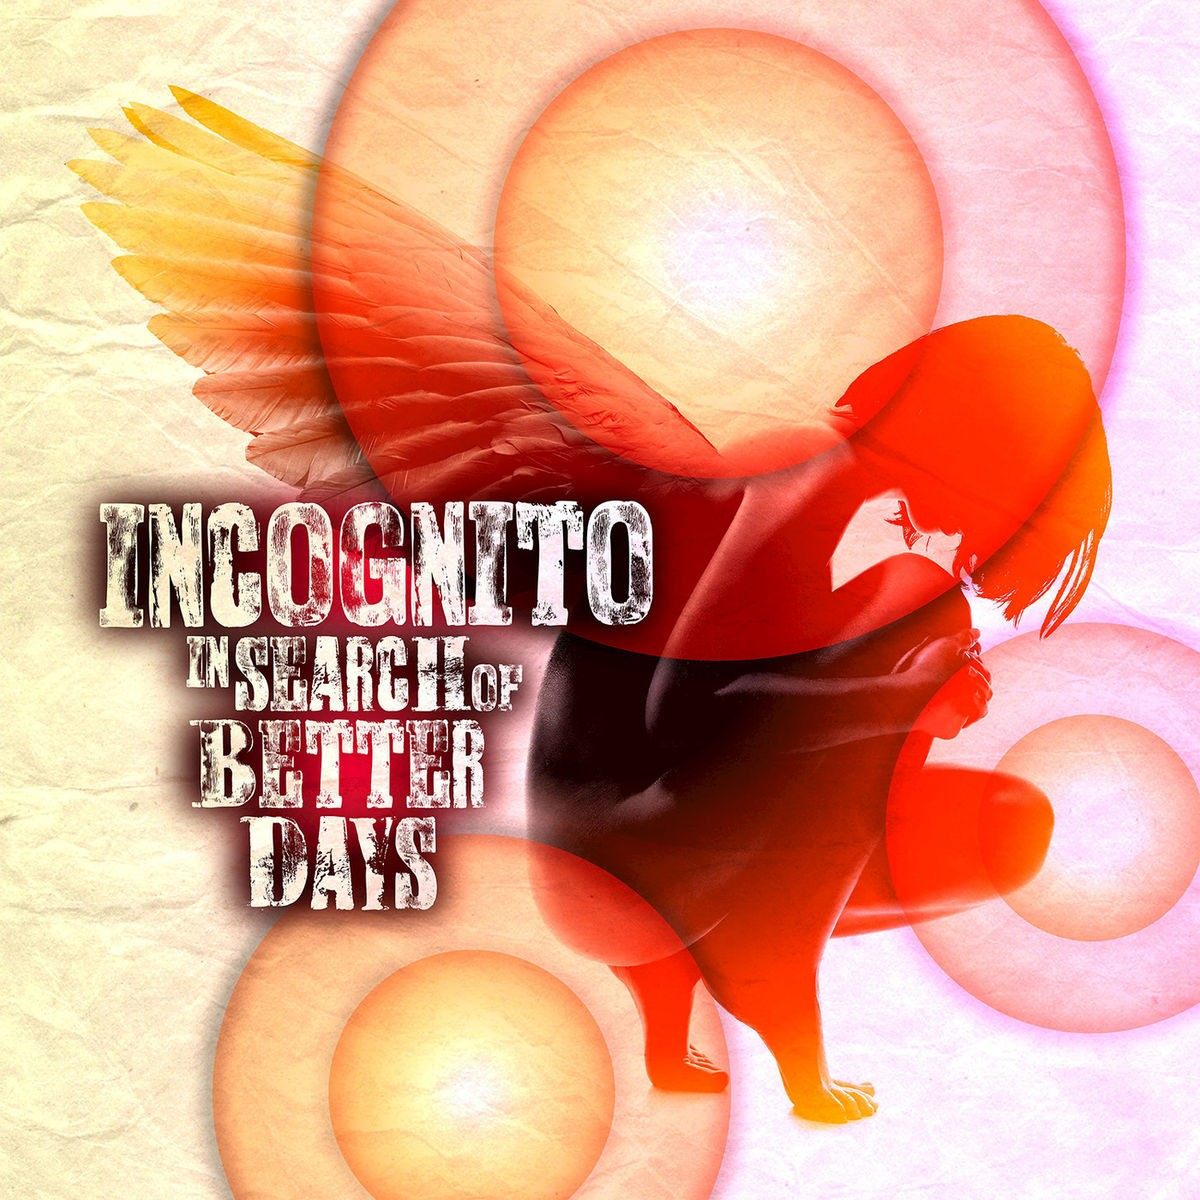 Incognito - In Search Of Better Days CD - 0211116EMU